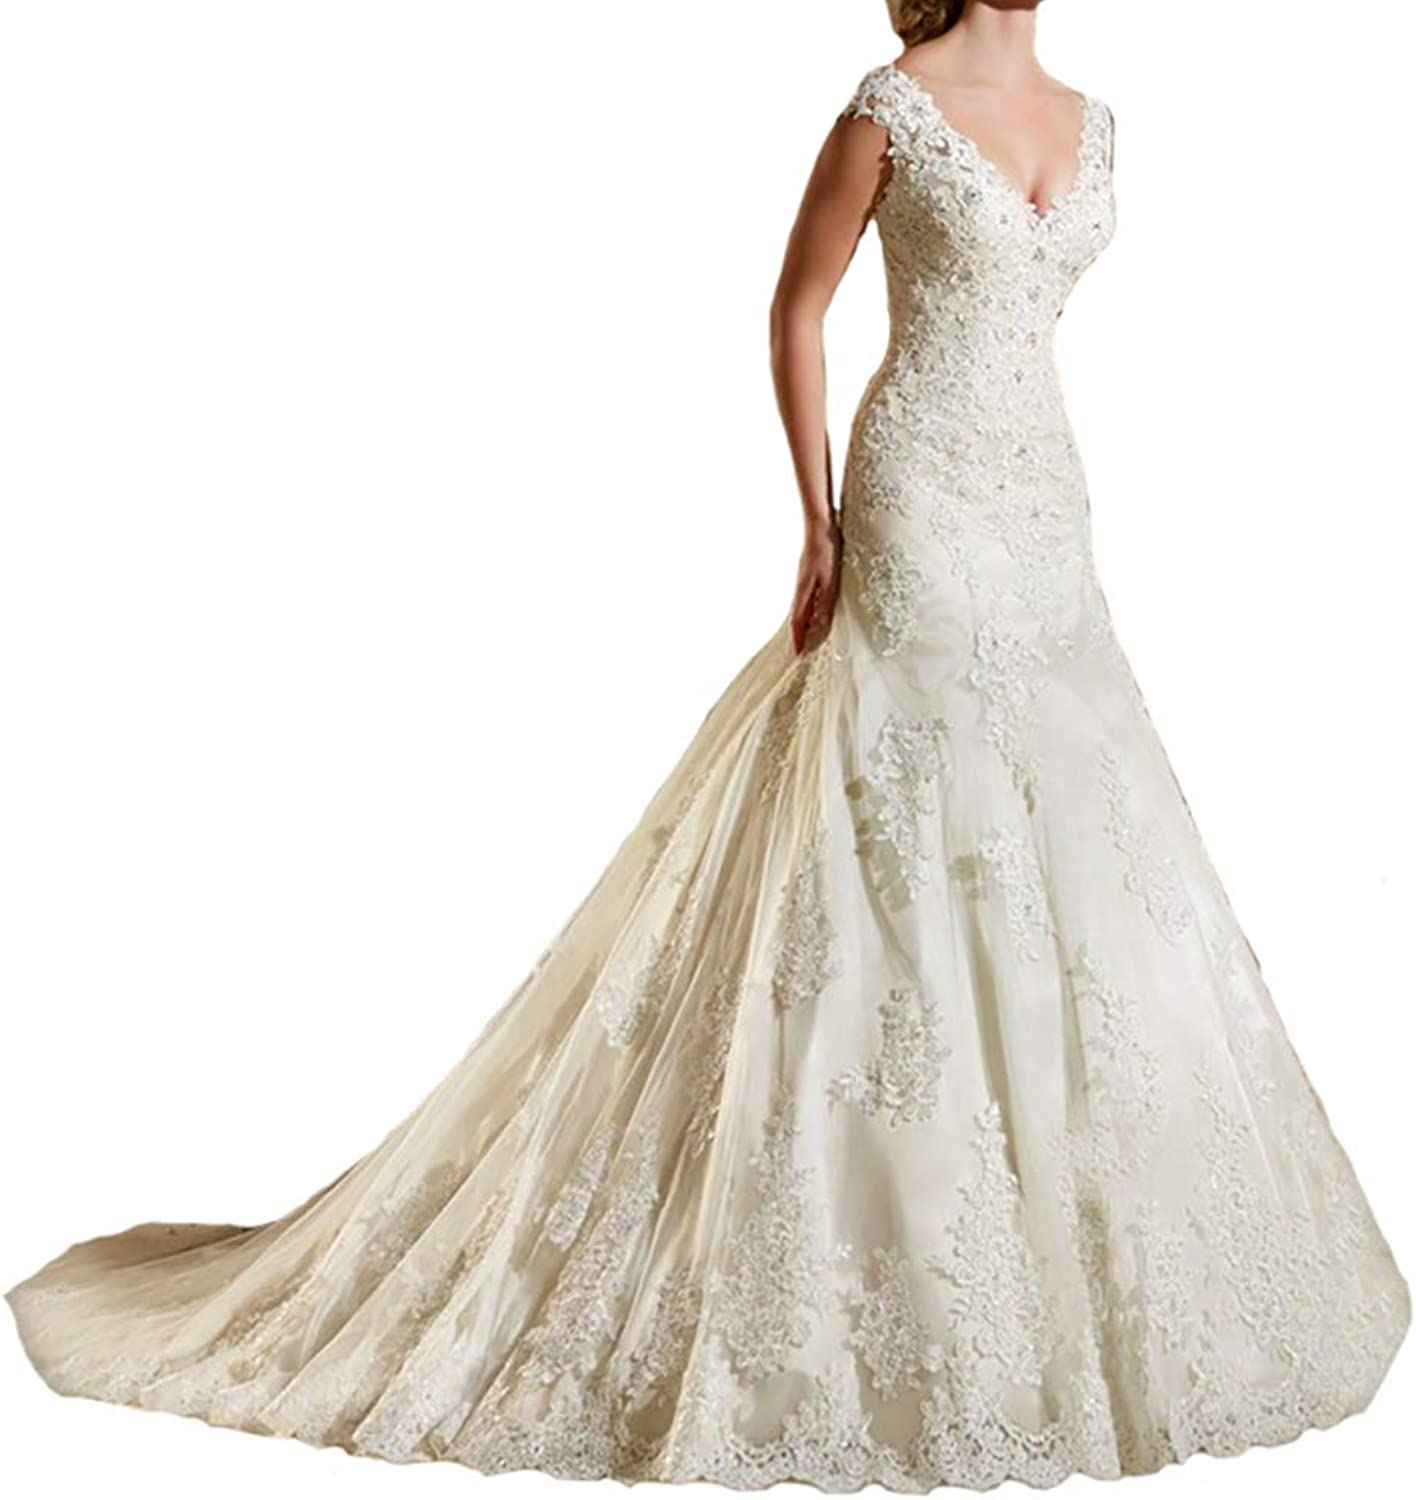 RYANTH Women's V Neck Lace Applique Wedding Dresses Long Beaded Mermaid Bridal Gowns